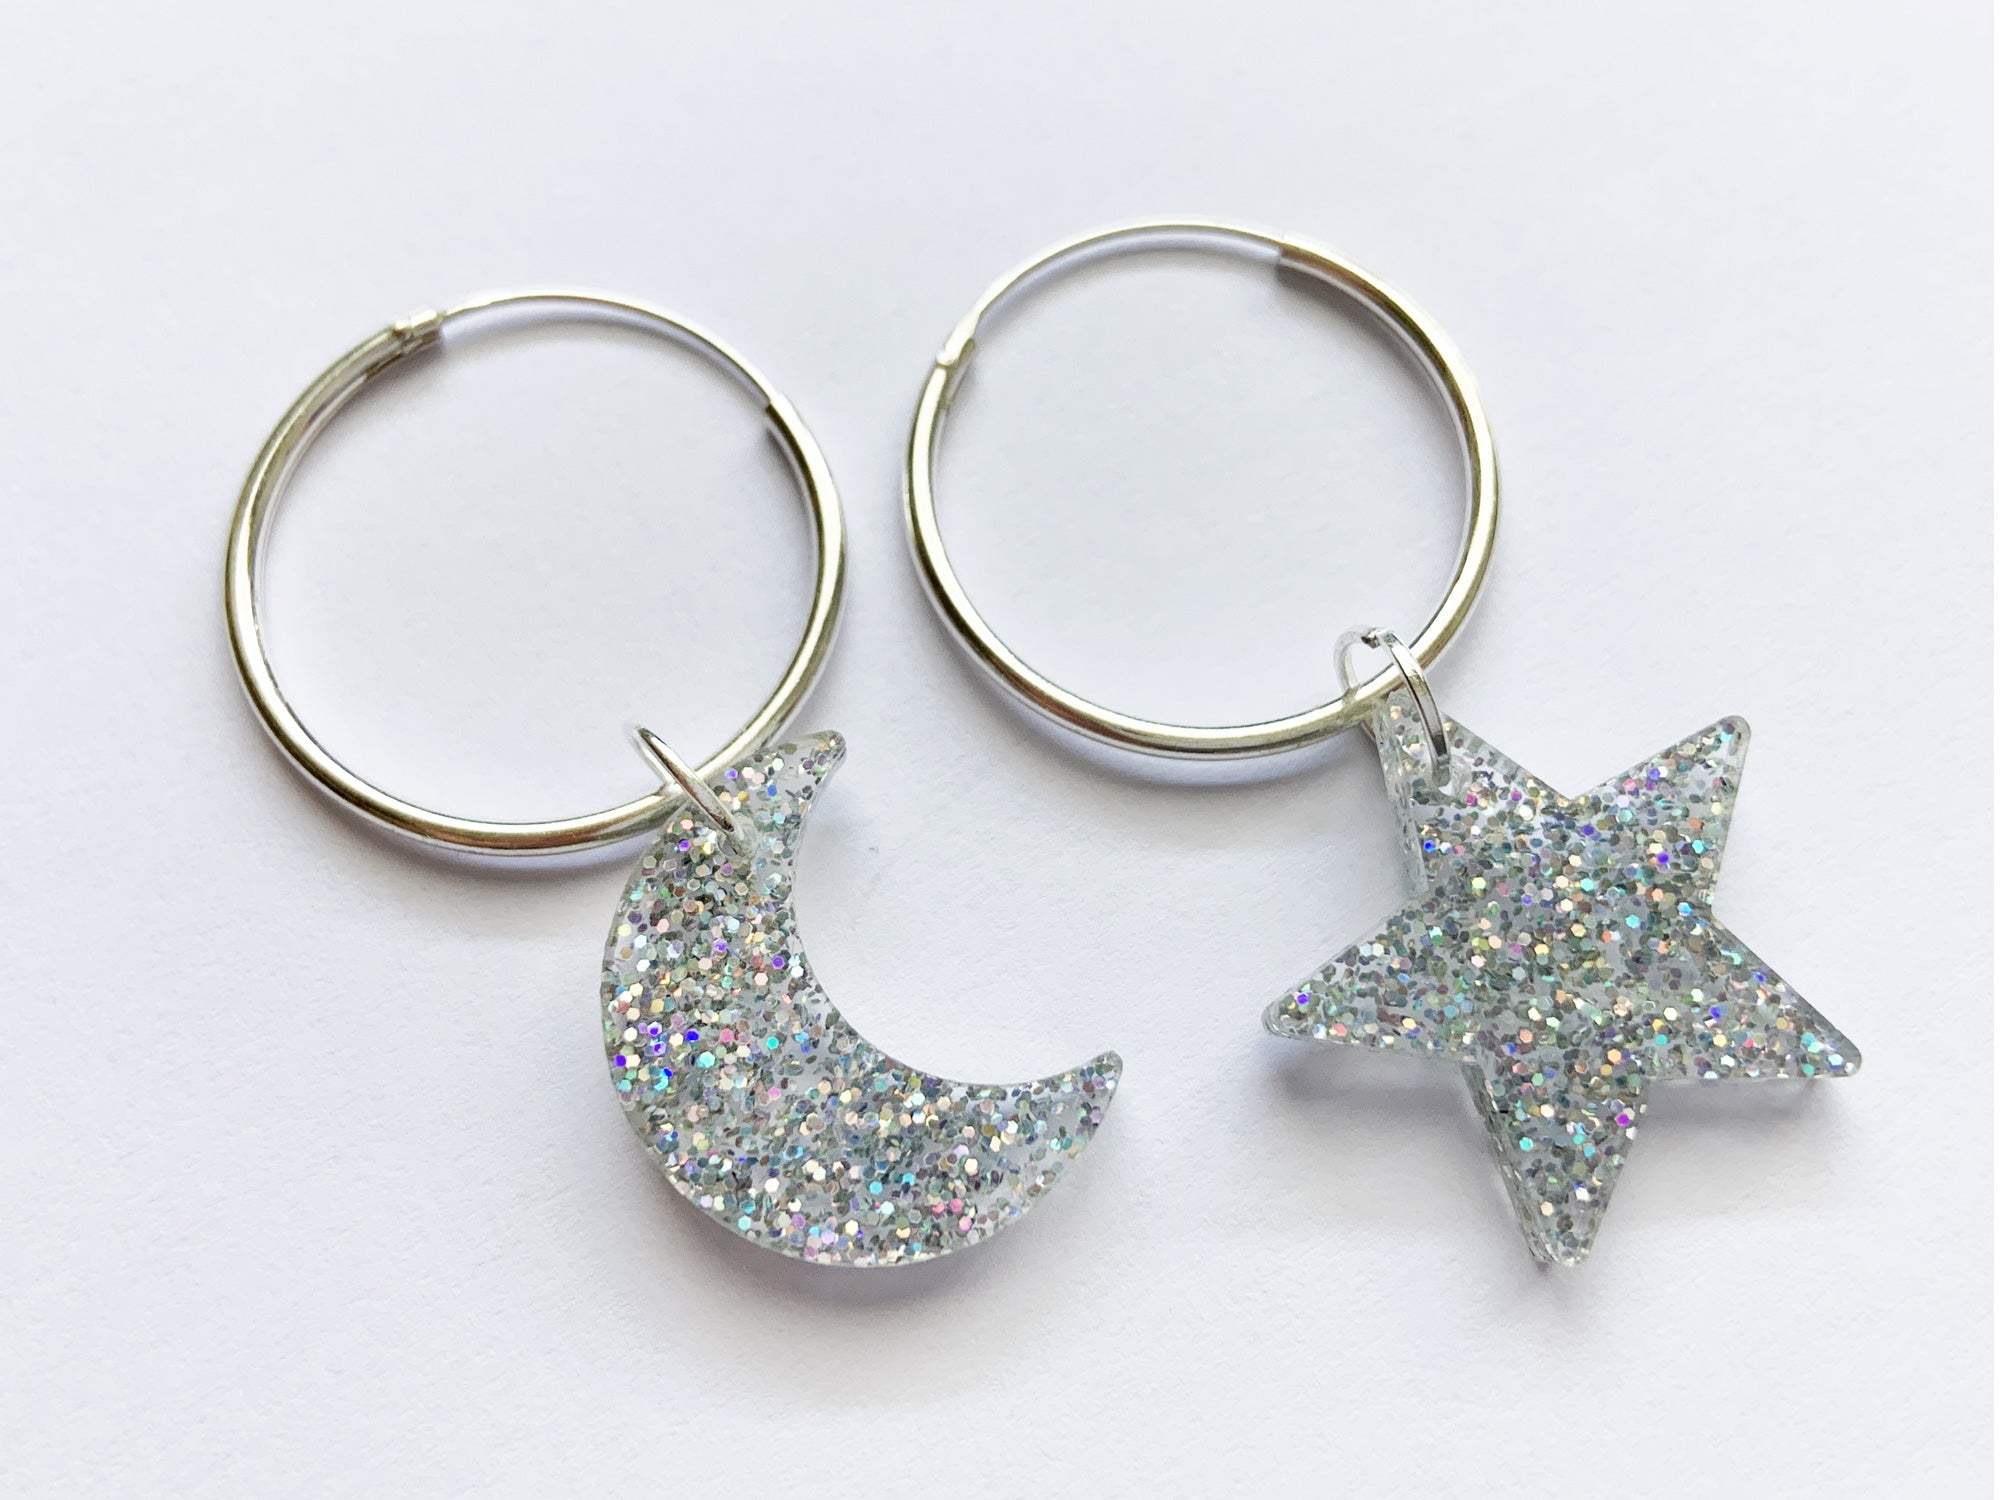 Pendientes Moon & Star 2.0 Now or never Jewelry